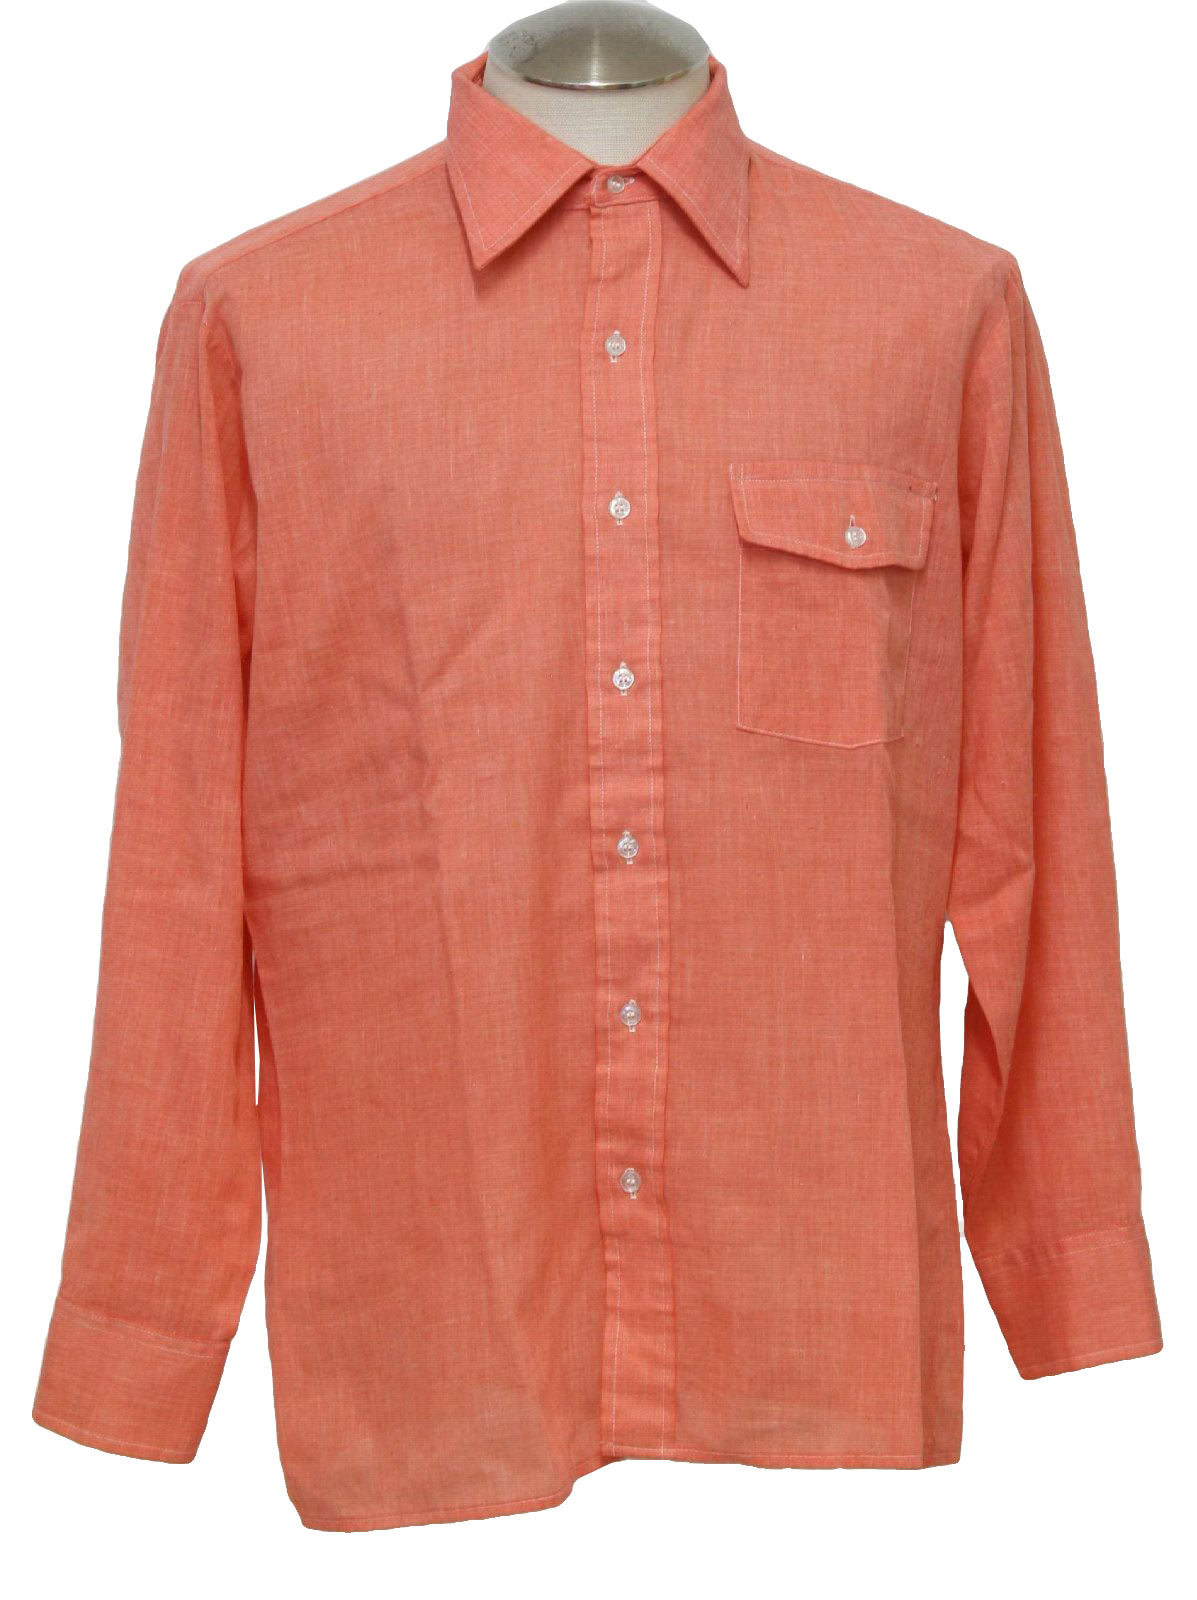 salmon colored dress shirt